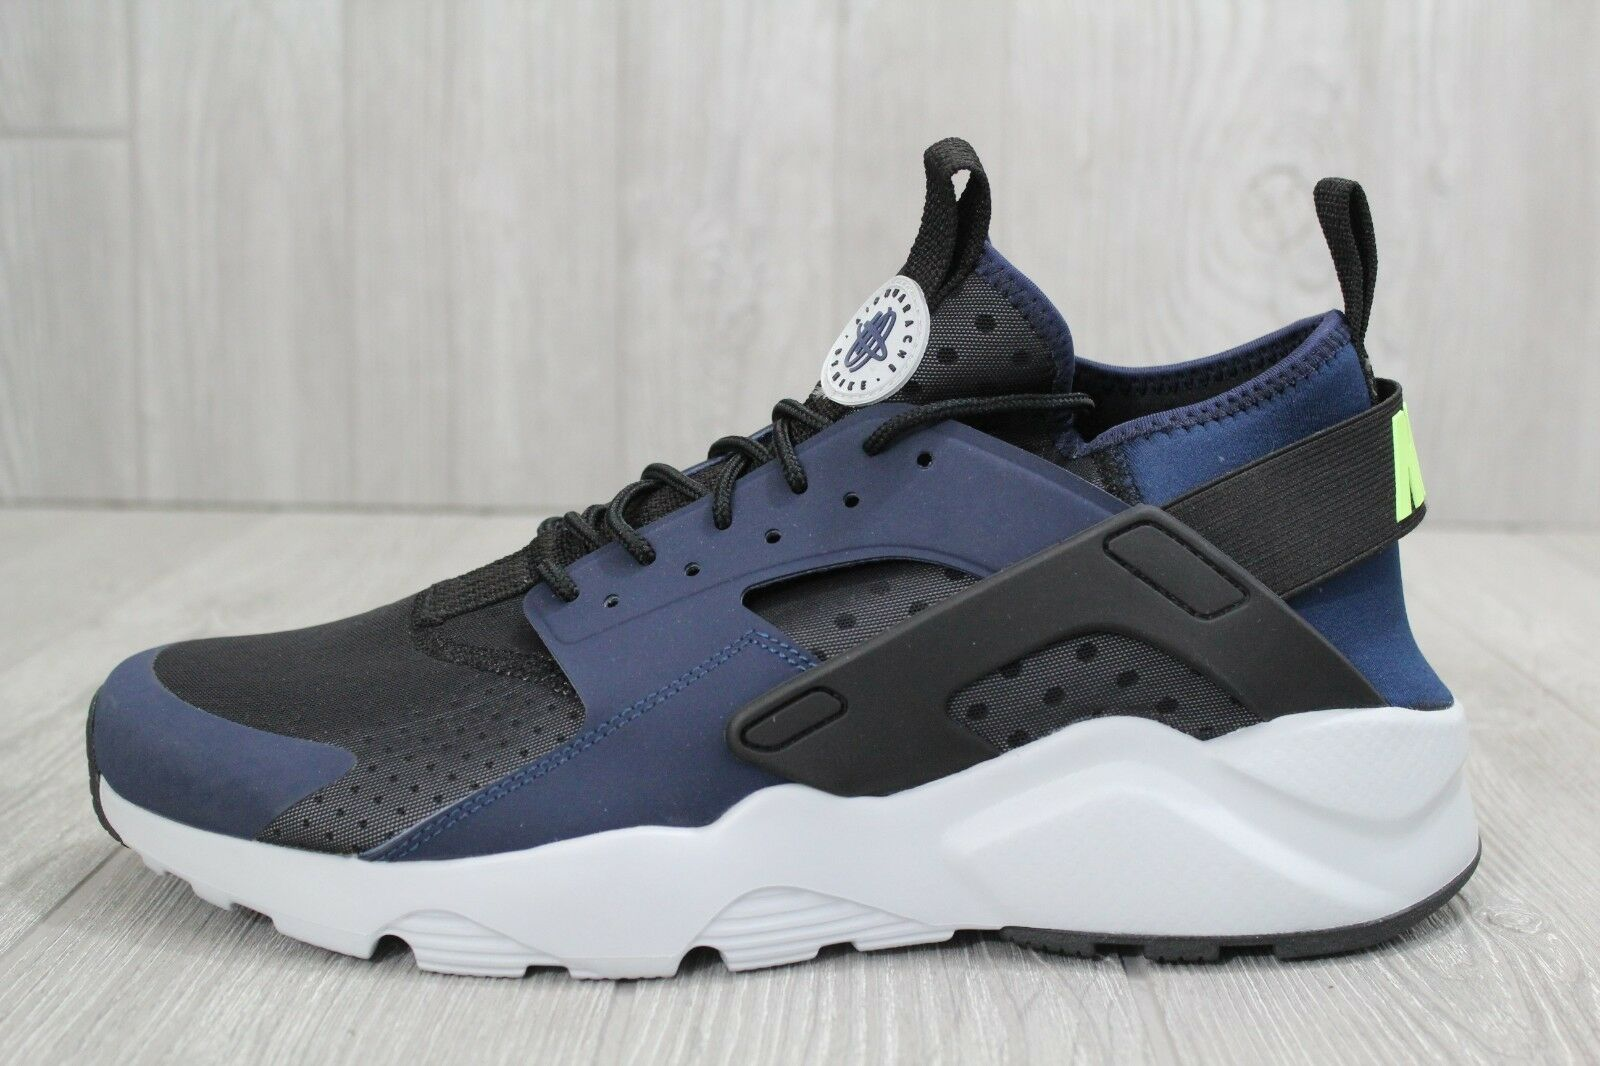 29 Nike Air Huarache Run Ultra Mid Running Shoes Navy Black Price reduction Great discount